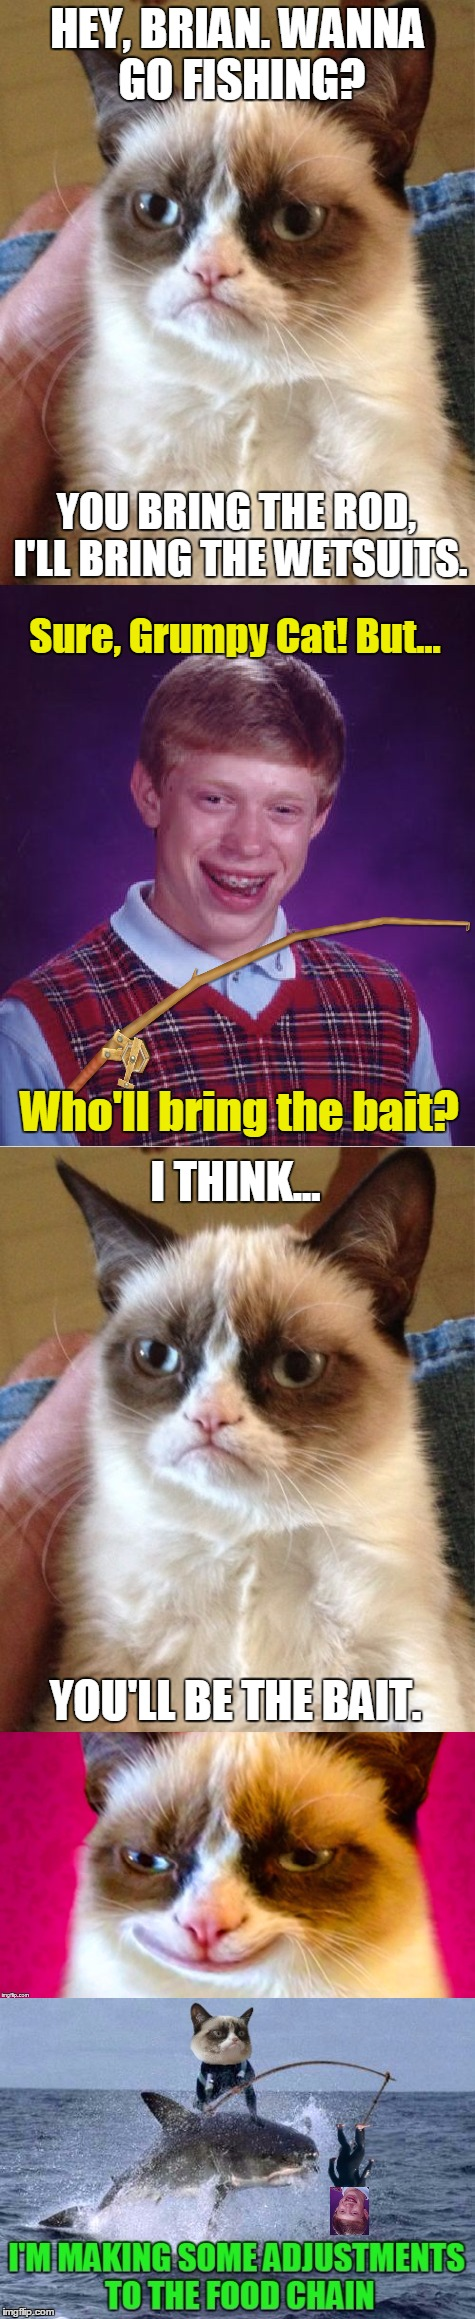 Bad Luck Brian and Grumpy Cat go fishing | HEY, BRIAN. WANNA GO FISHING? YOU'LL BE THE BAIT. YOU BRING THE ROD, I'LL BRING THE WETSUITS. Sure, Grumpy Cat! But... Who'll bring the bait | image tagged in memes,grumpy cat,bad luck brian,fishing,shark,grumpy cat invitation | made w/ Imgflip meme maker